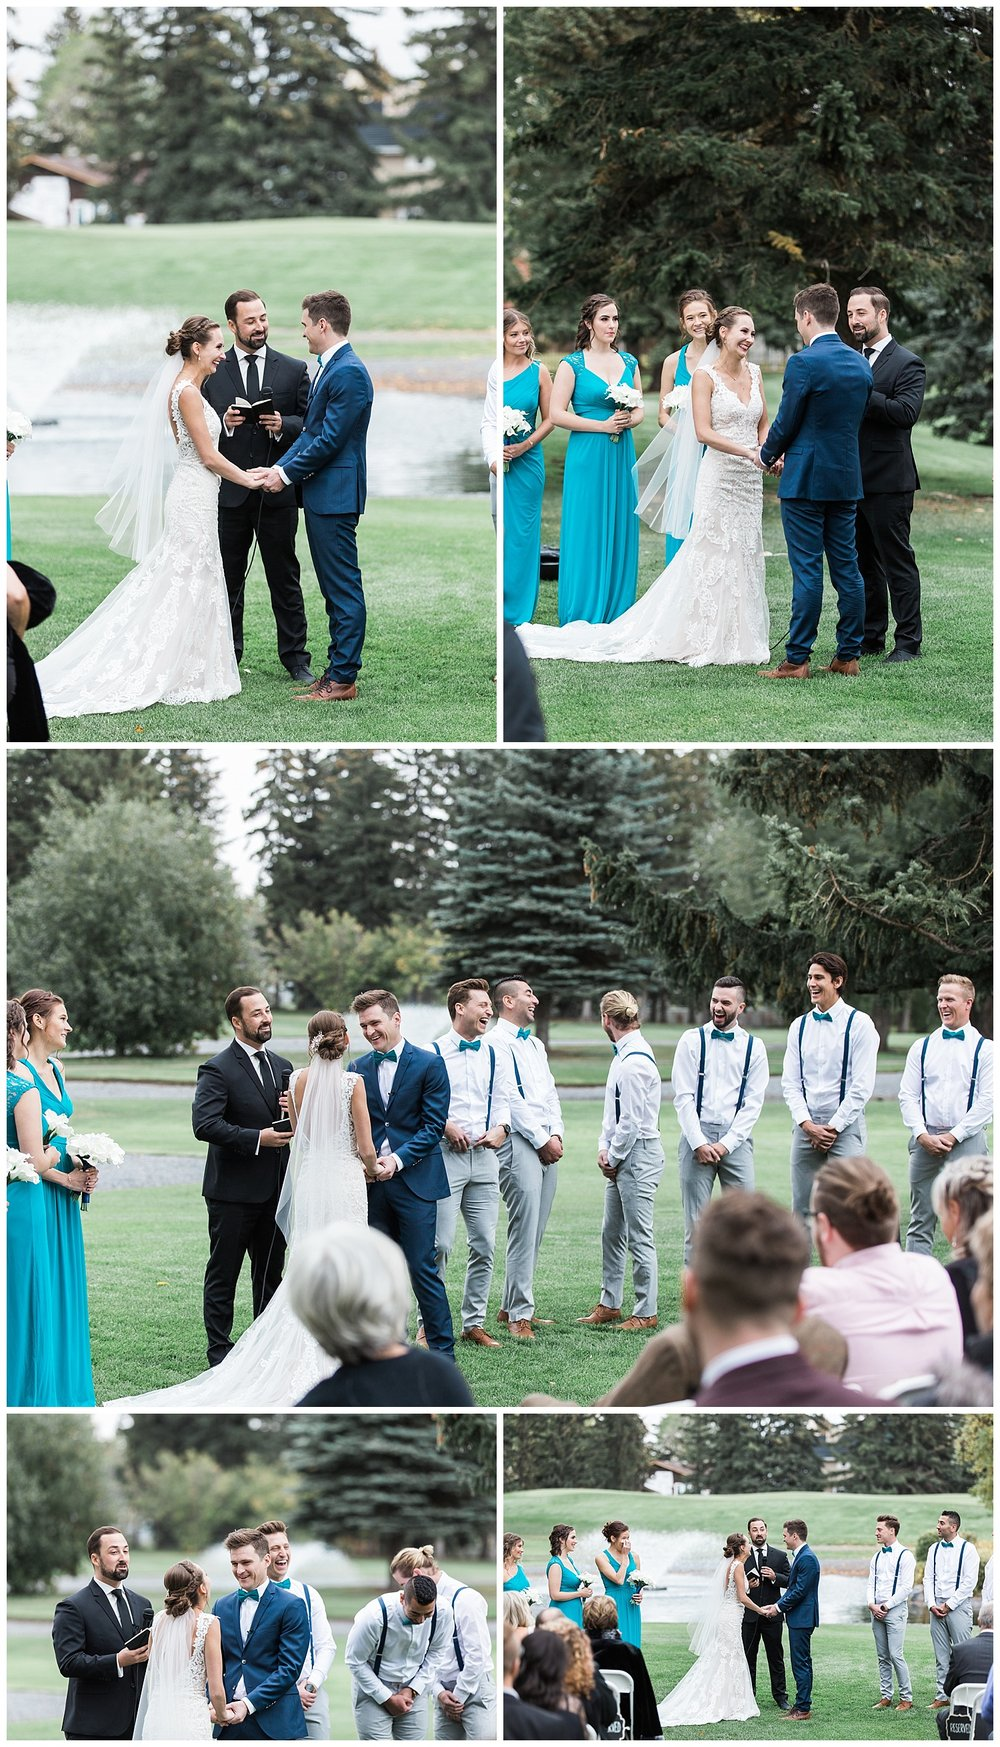 Calgary-fall-wedding-photographer-willow-park-golf-country-club-_0017.jpg